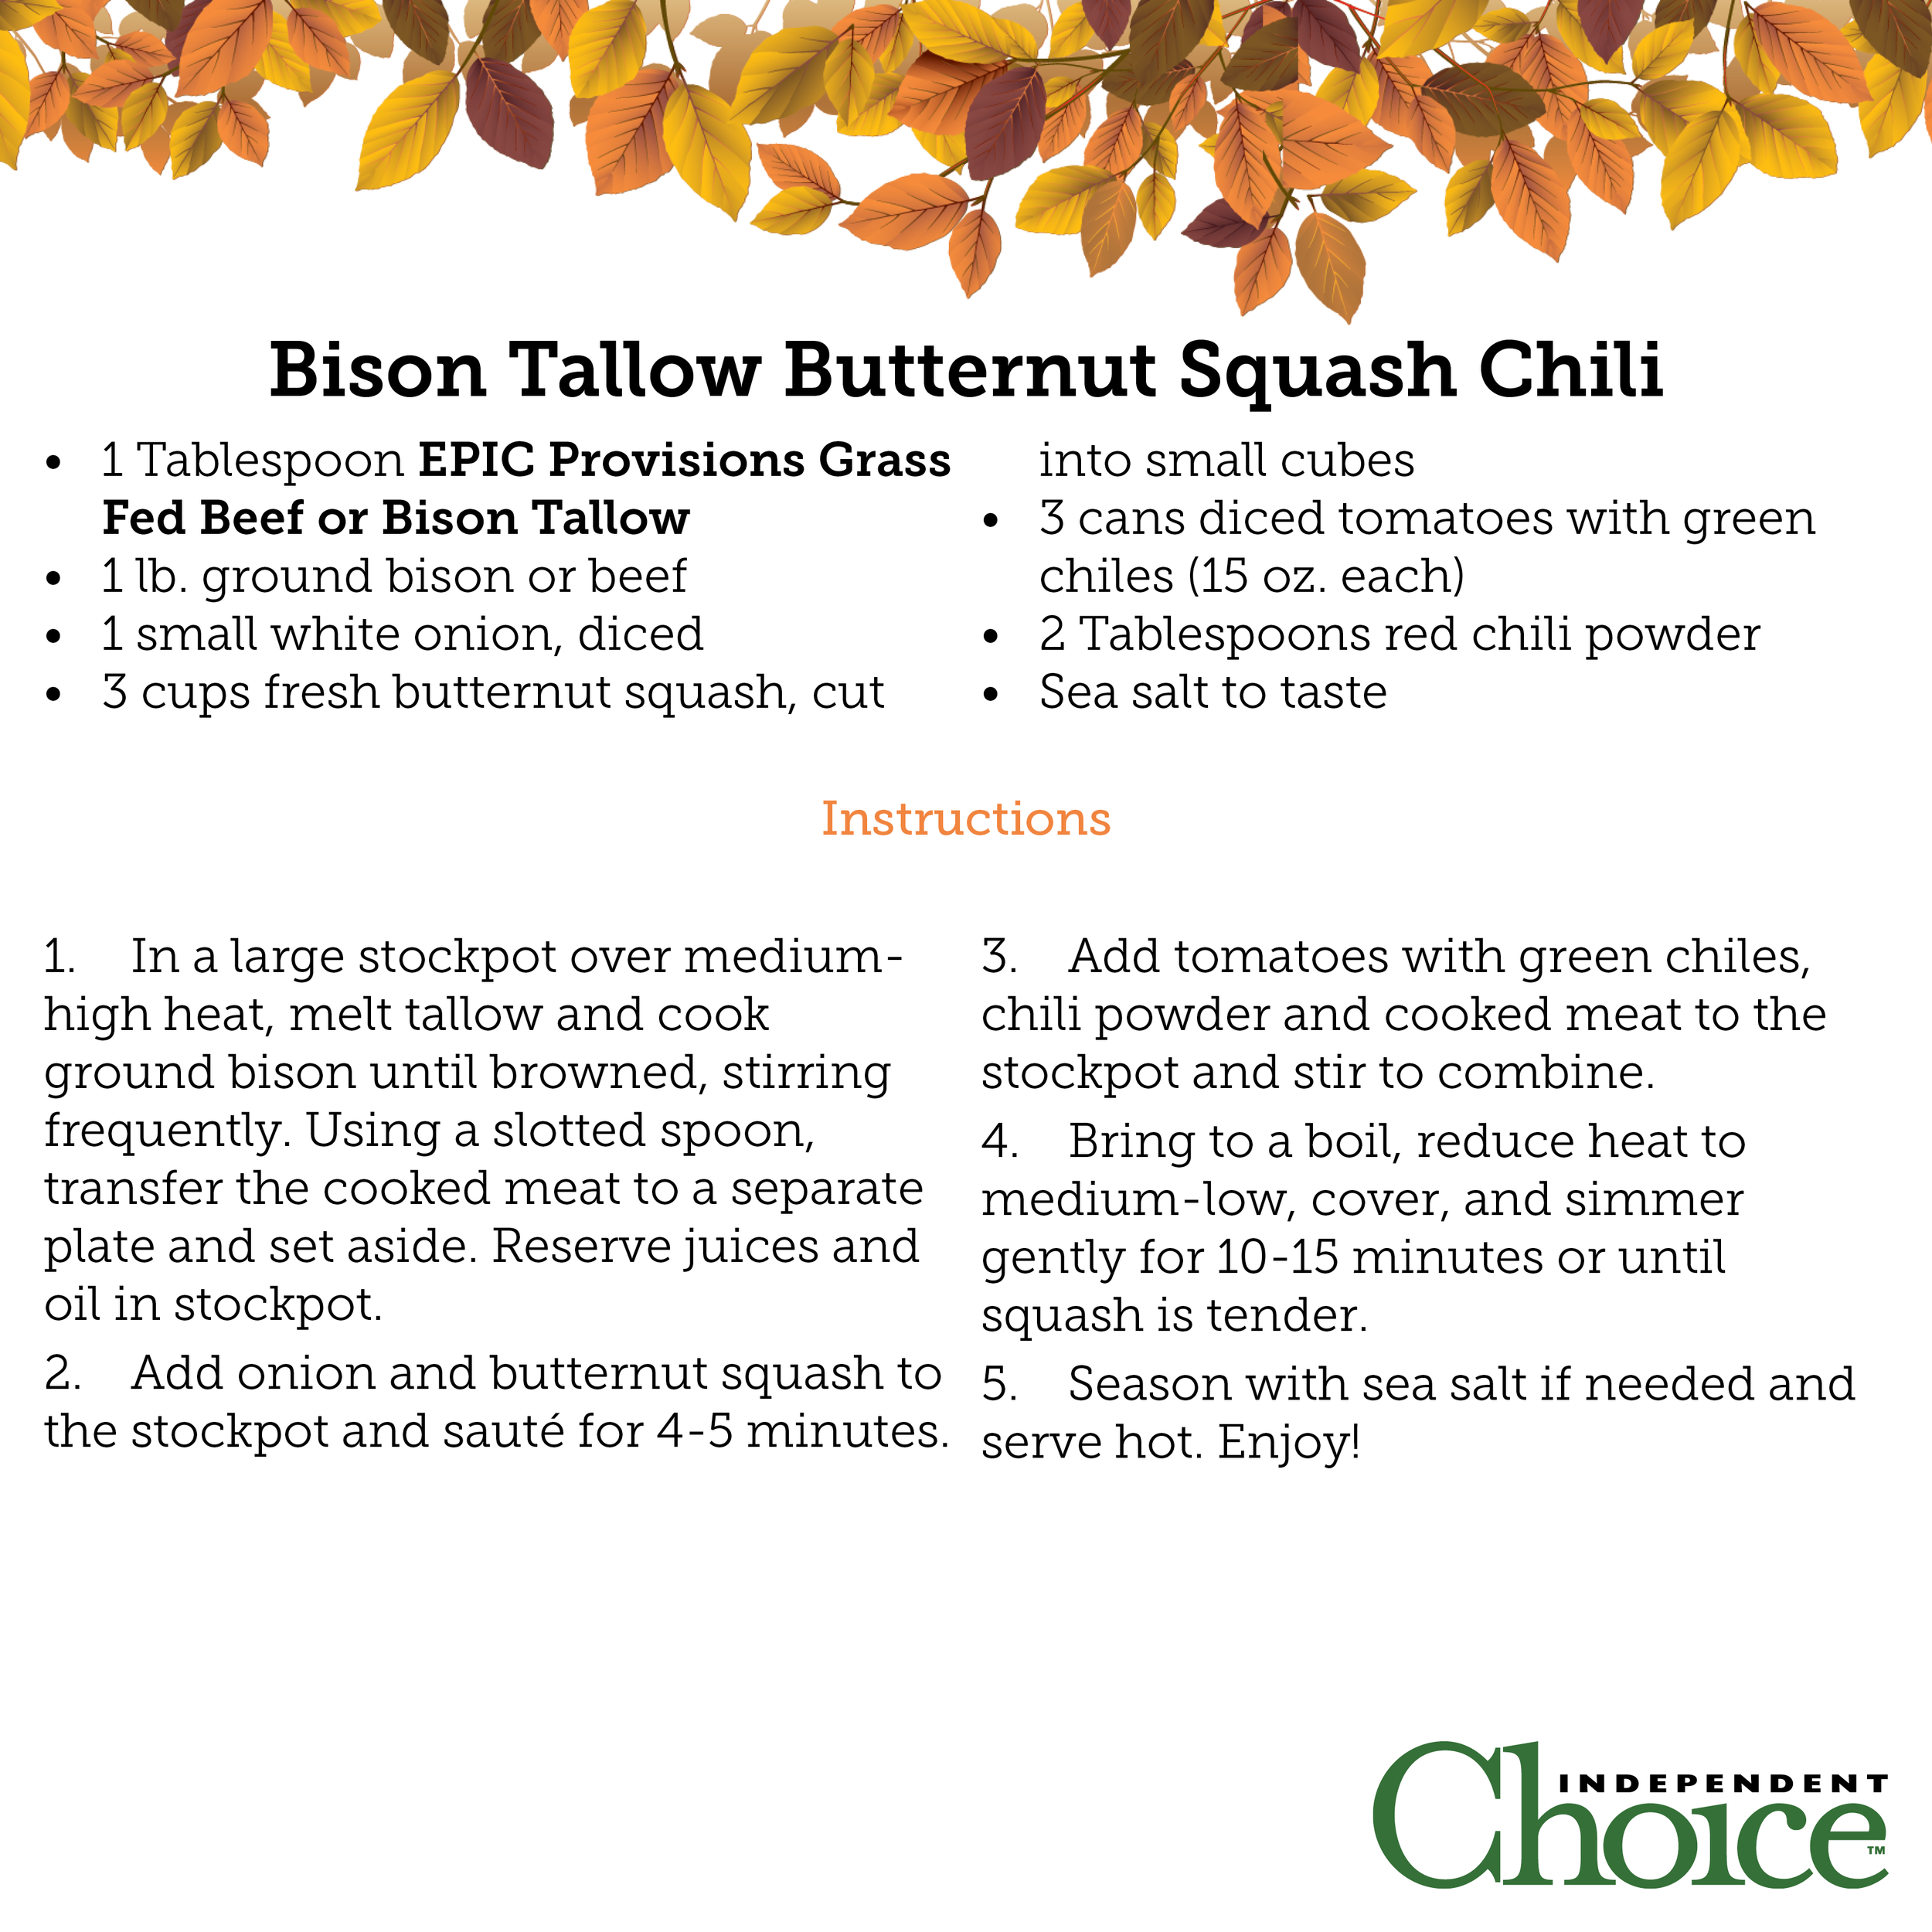 Bison Tallow Butternut Squash Chili.png